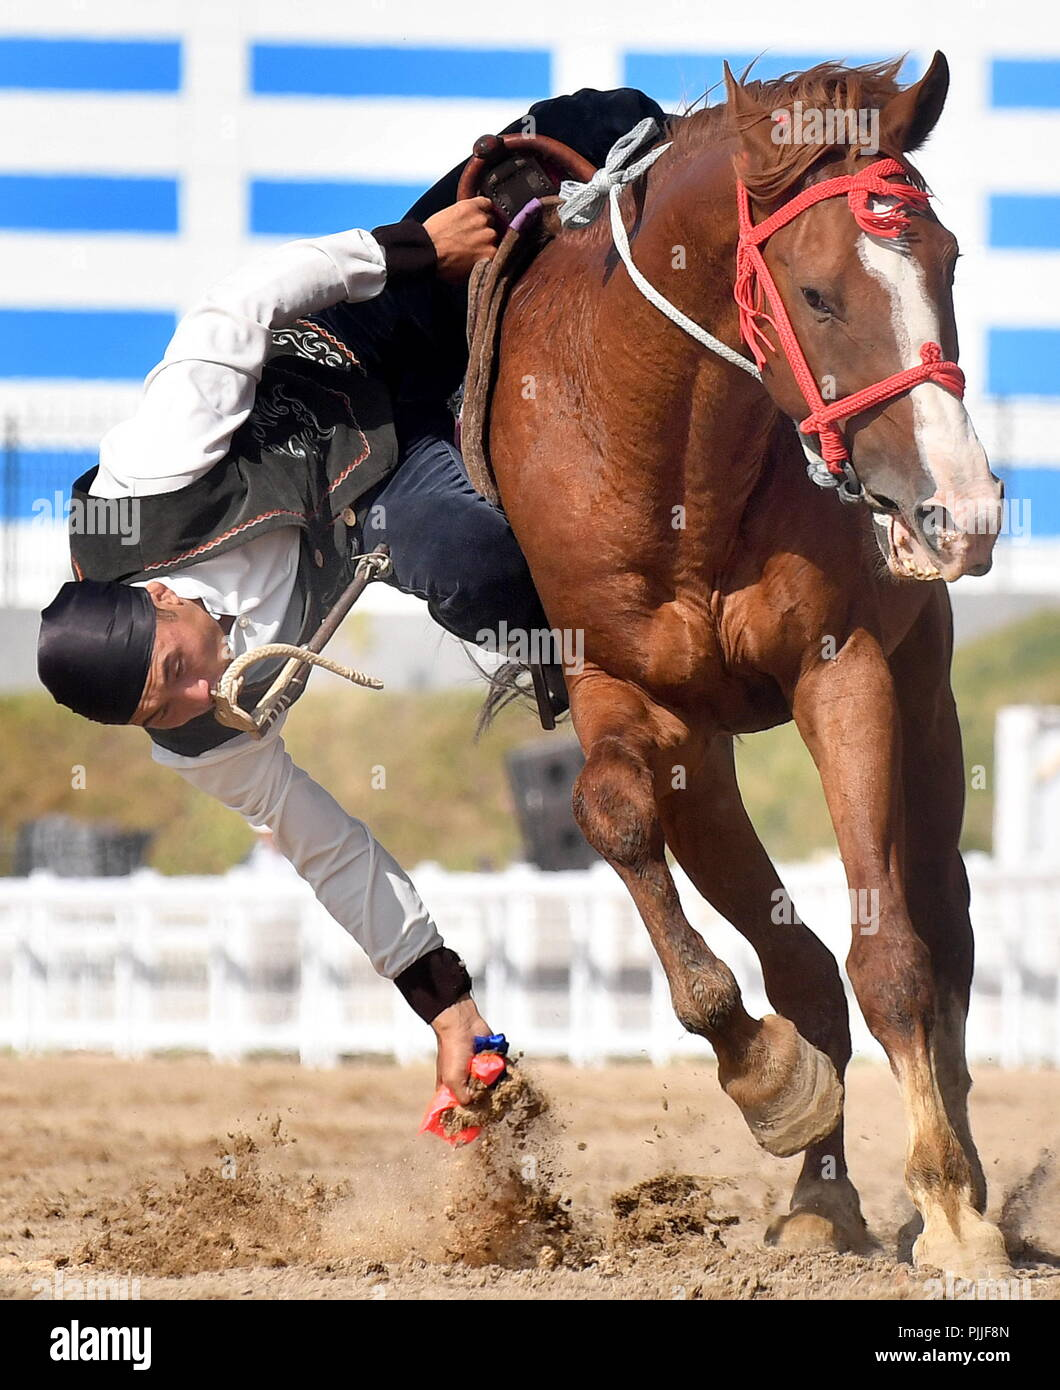 Cholpon Ata Kyrgyzstan 07th Sep 2018 Issyk Kul Region Kyrgyzstan September 7 2018 A Man Competes In A Trick Riding Event At The 2018 World Nomad Games Held In The Town Of